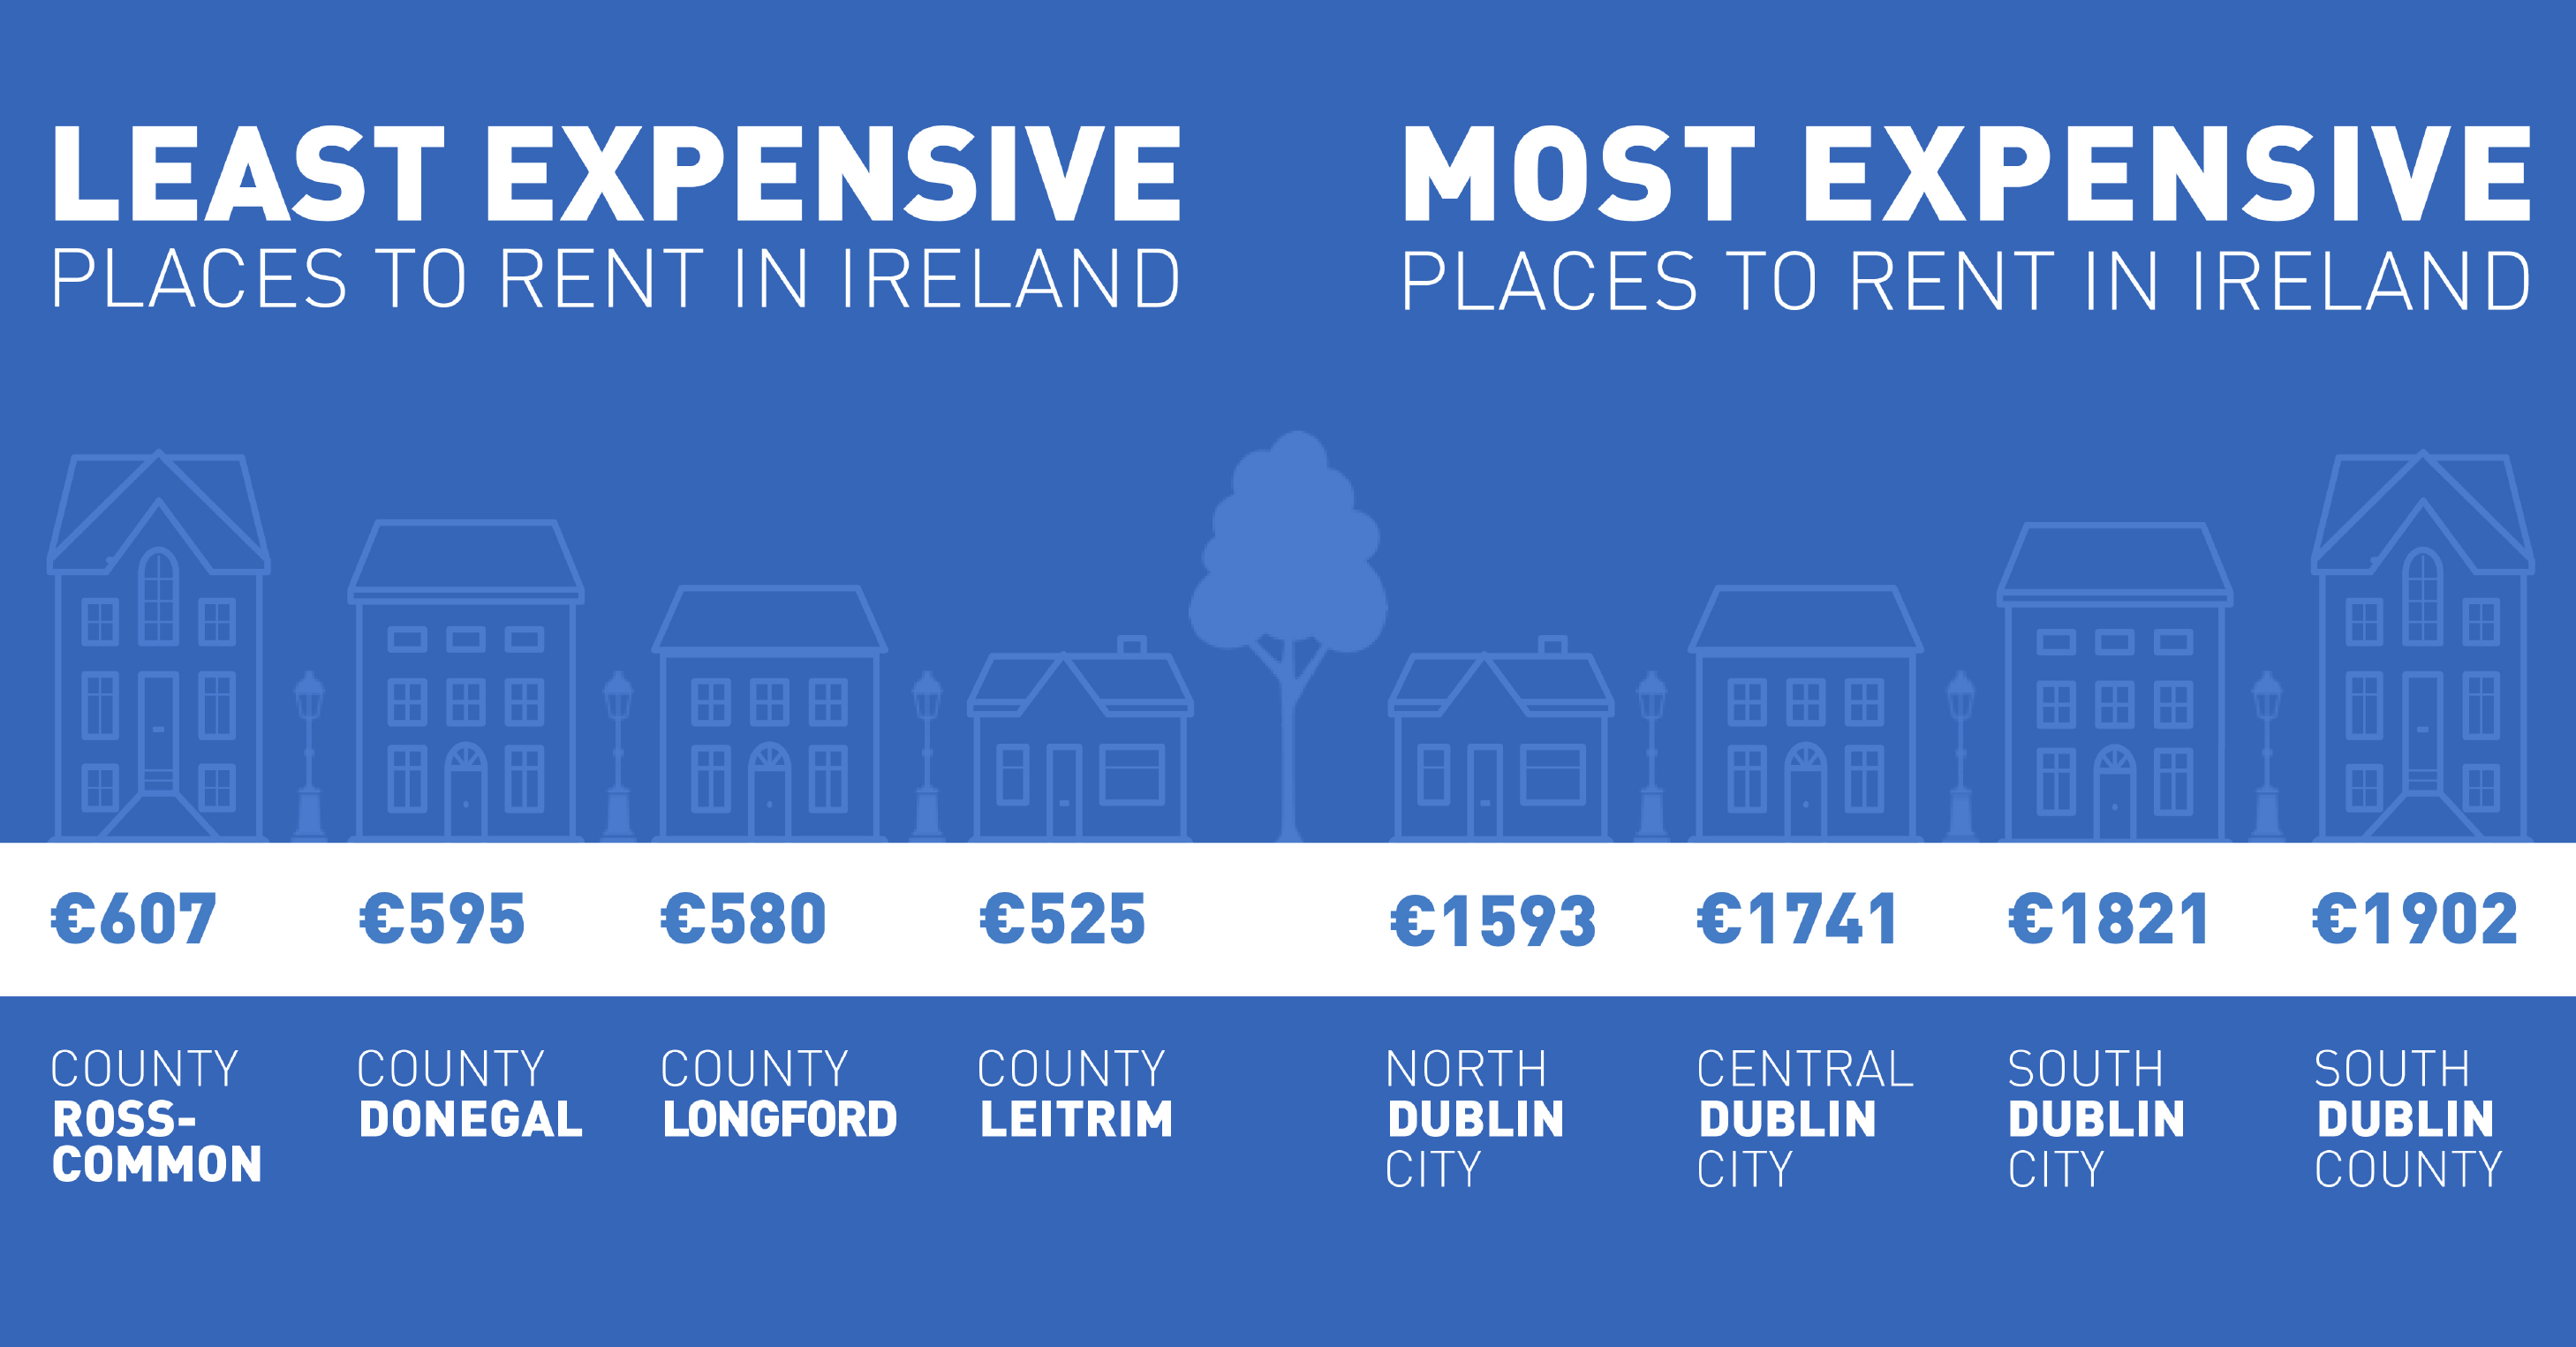 Graphic showing most & least expensive places to rent